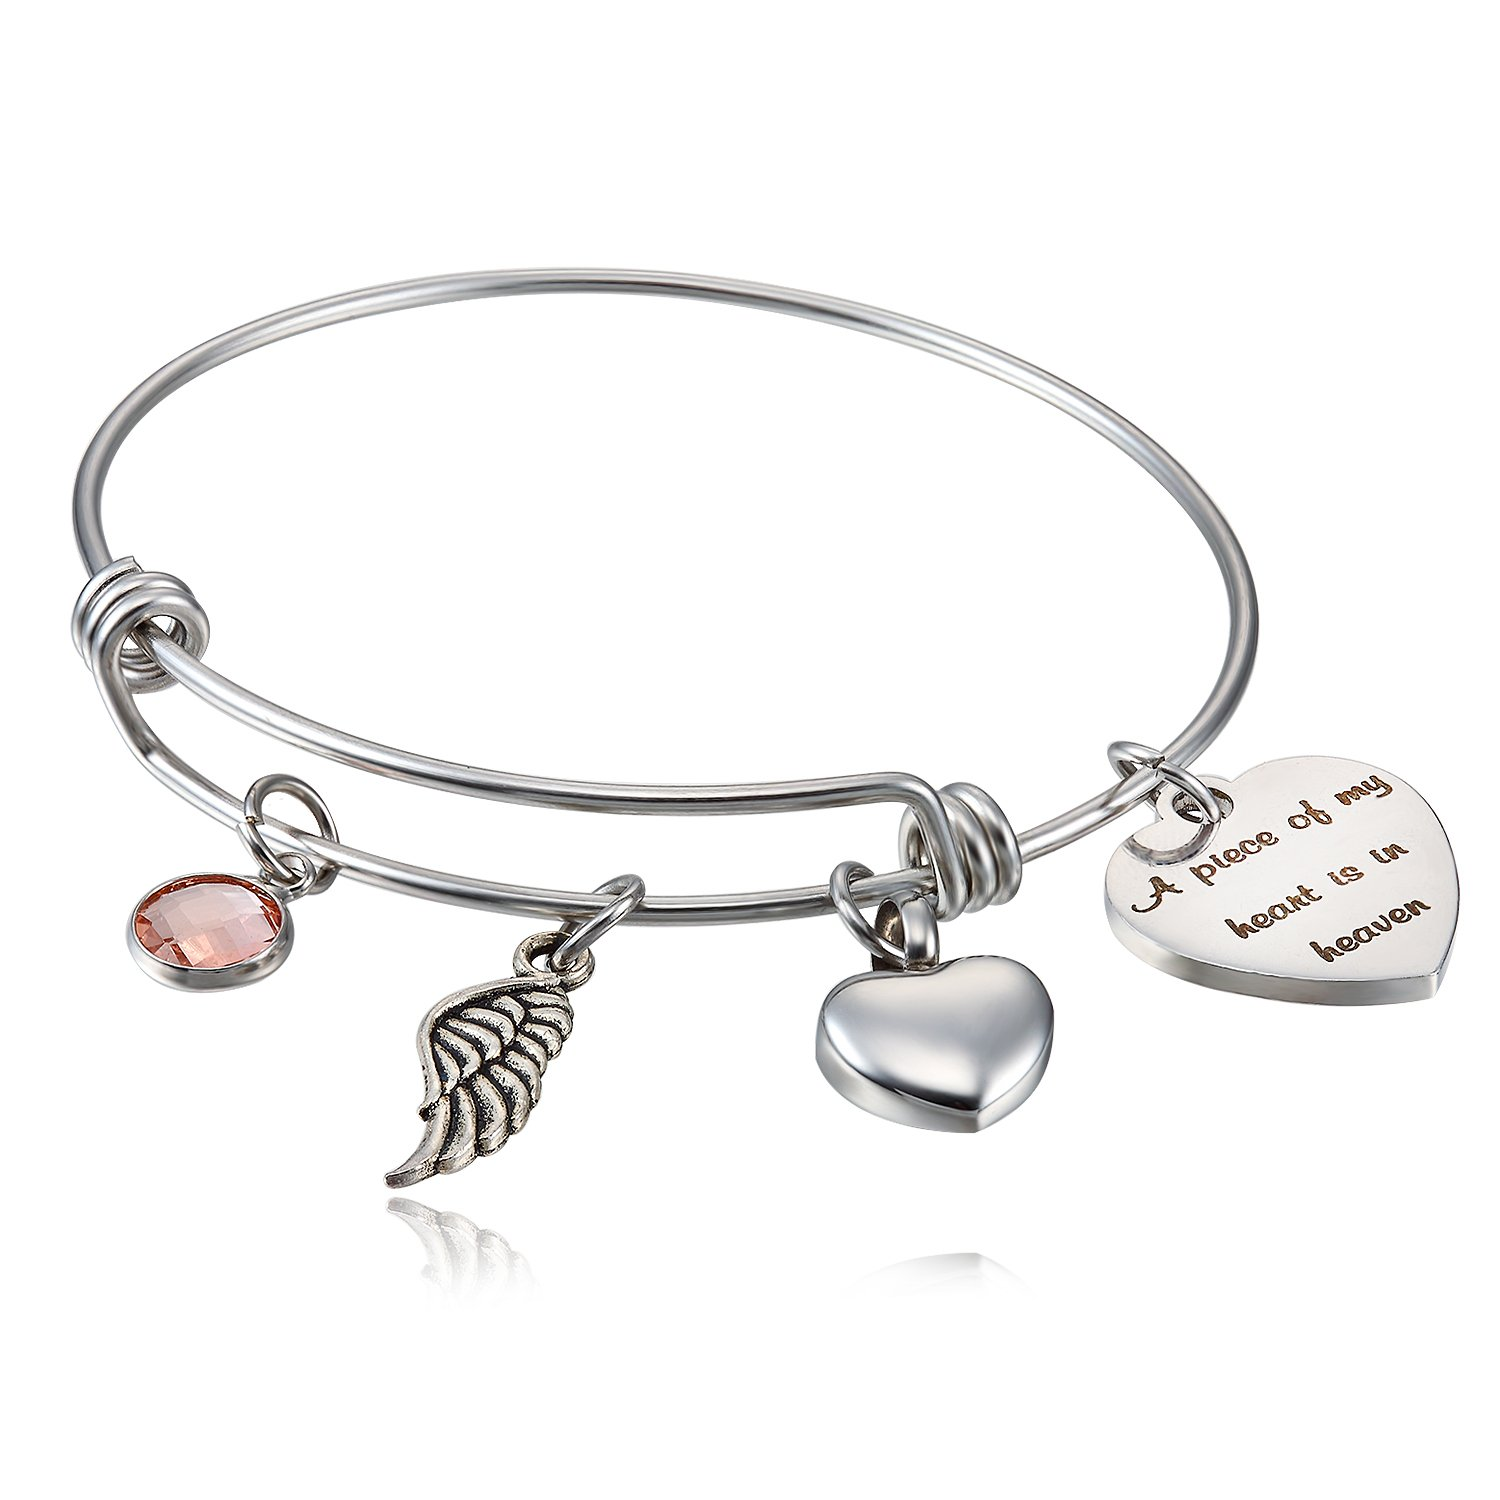 FLODANCER Cremation Urn Bracelet,A Piece My Heart is in Heaven,Cremation Memorial Jewelry Ashes,Sympathy Jewelry bracelet angle wing charm